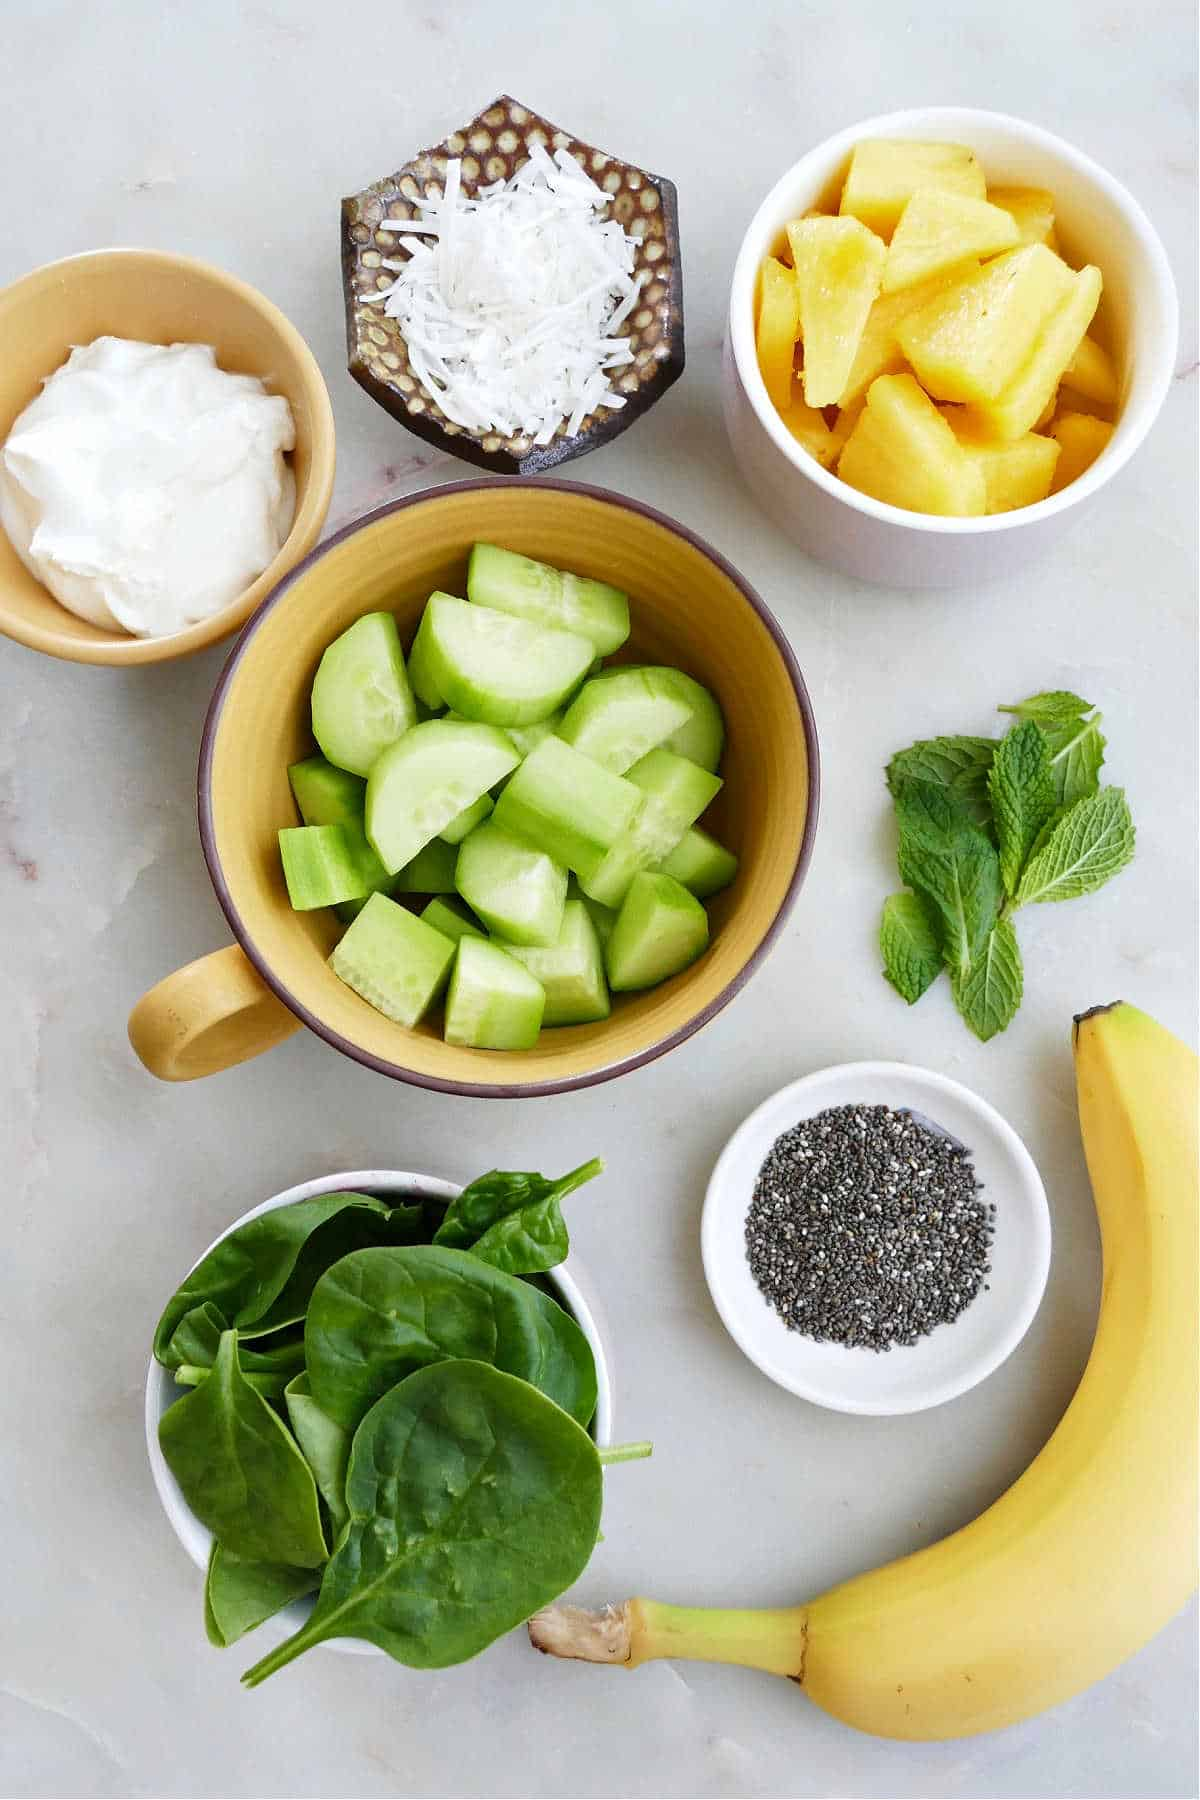 ingredients for a cucumber green smoothie spread out next to each other on a counter